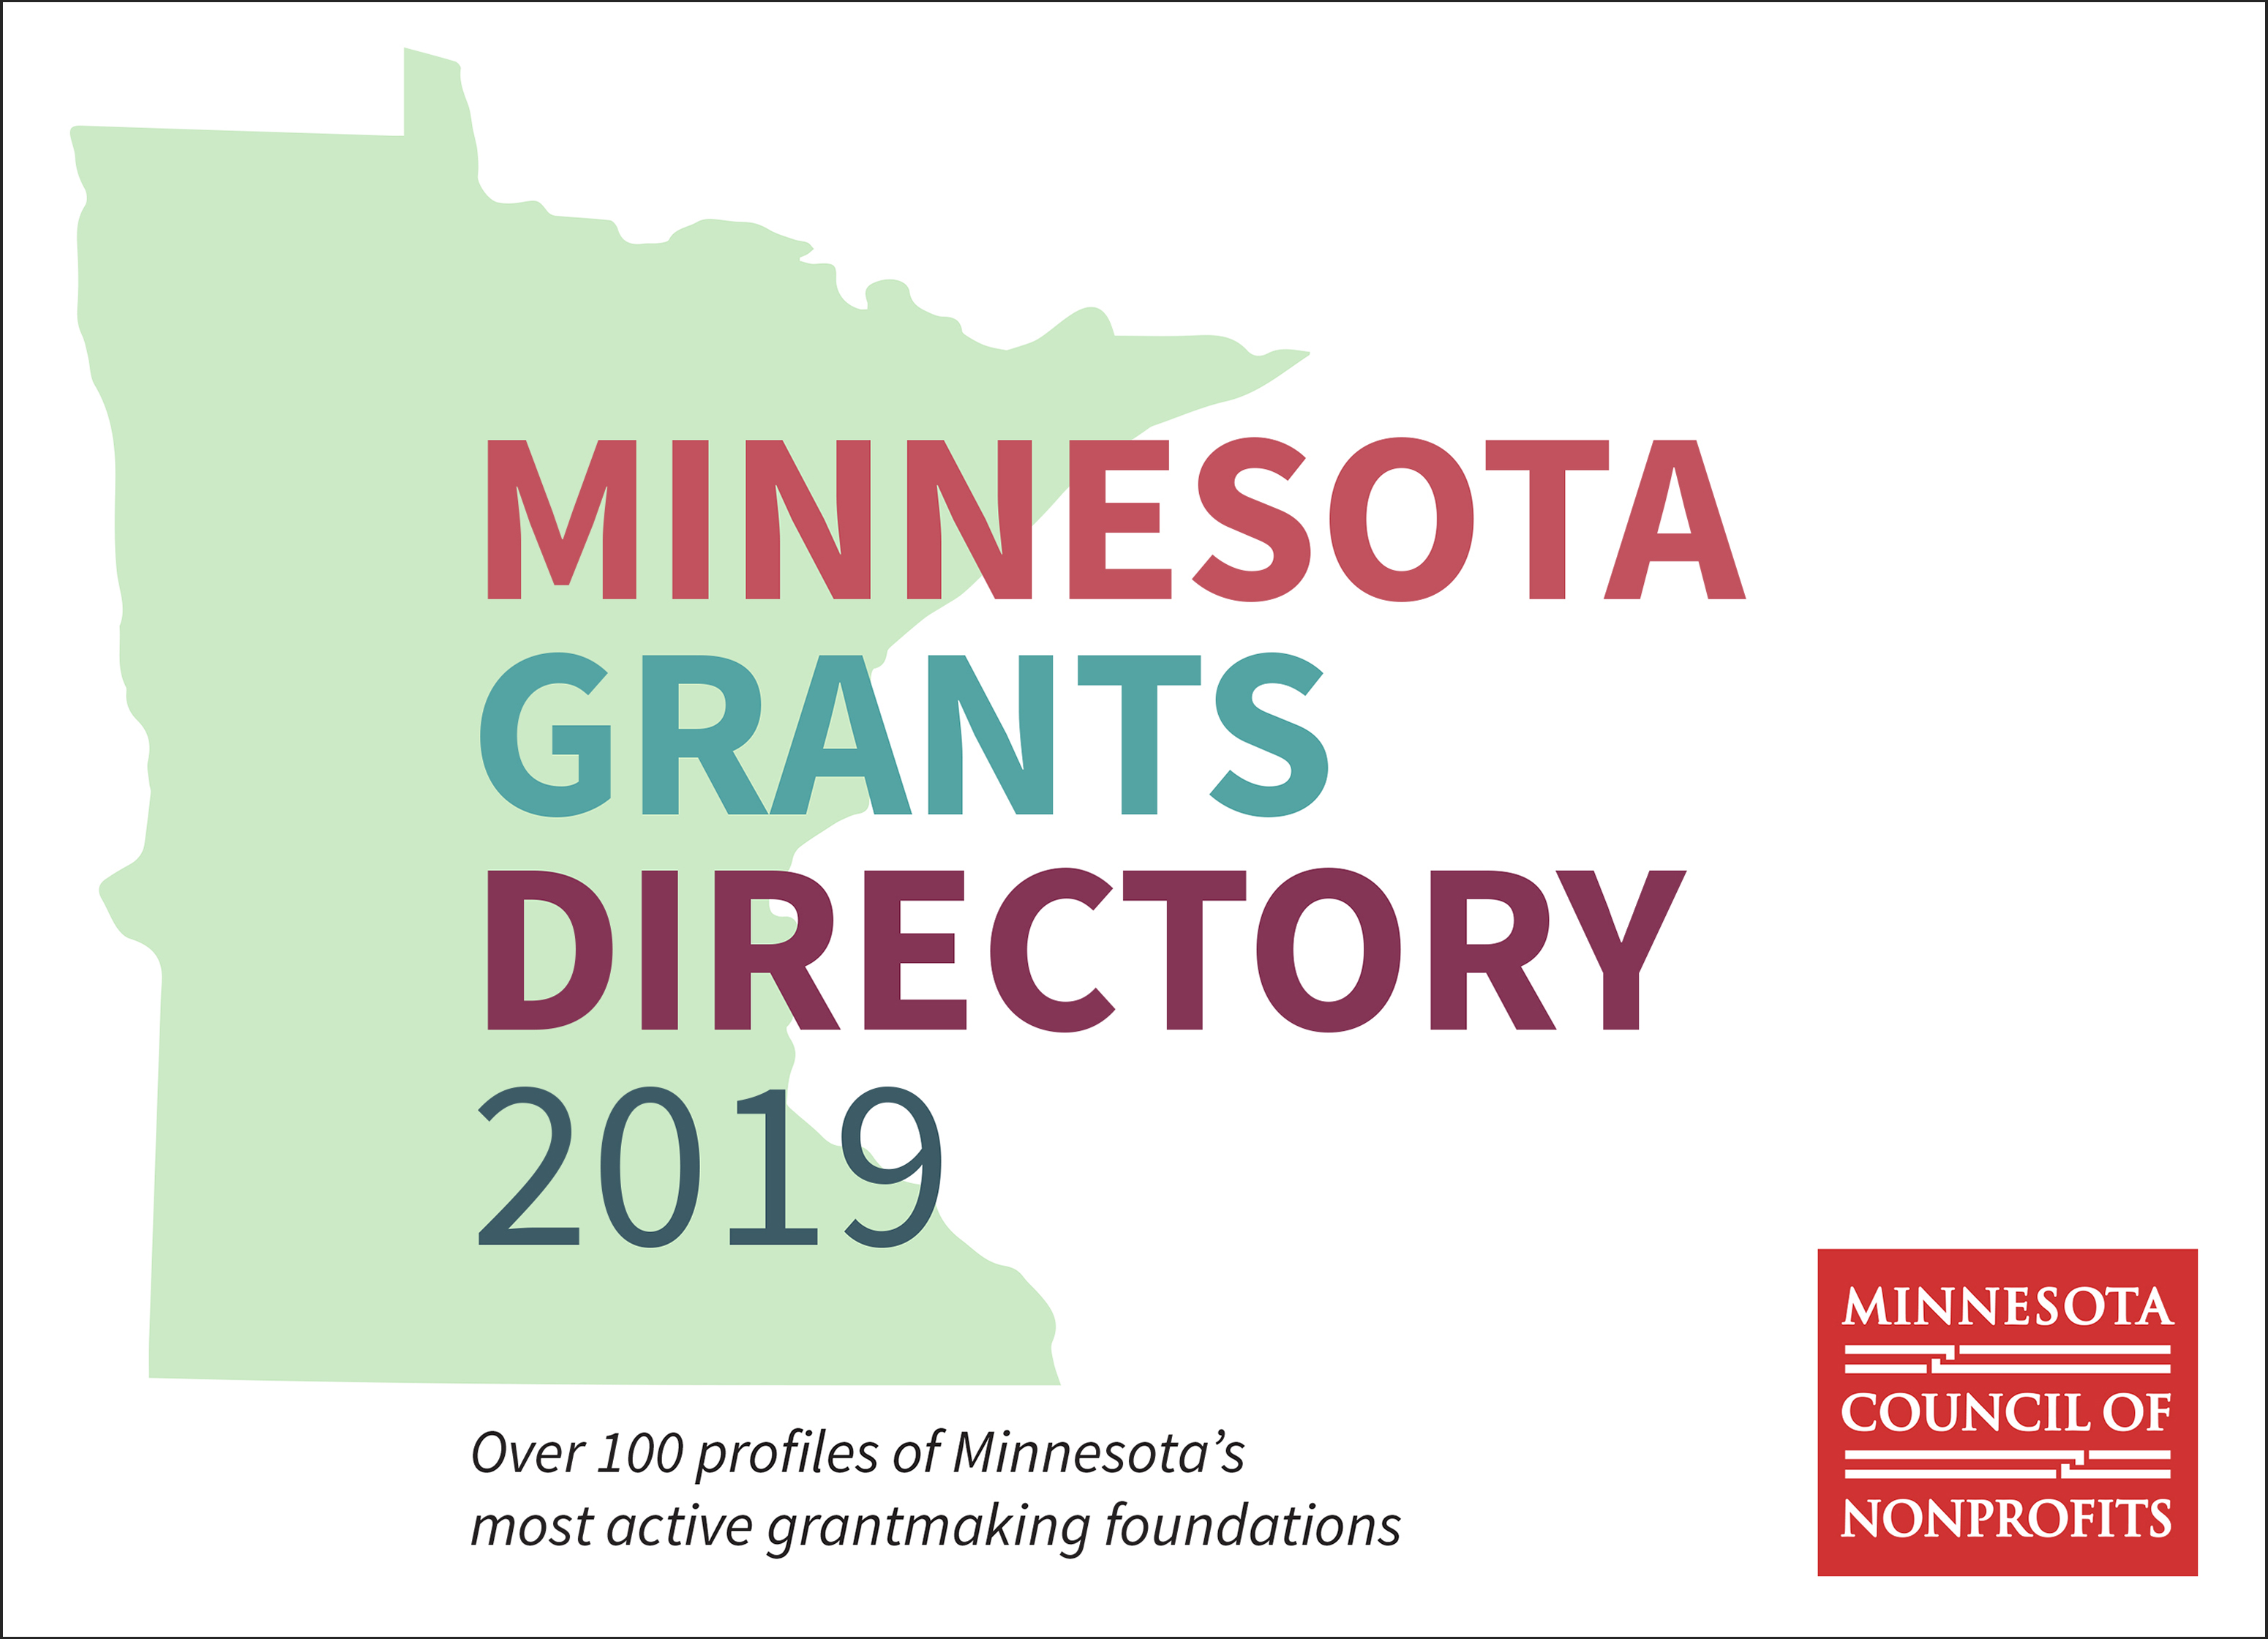 2019 Minnesota Grants Directory